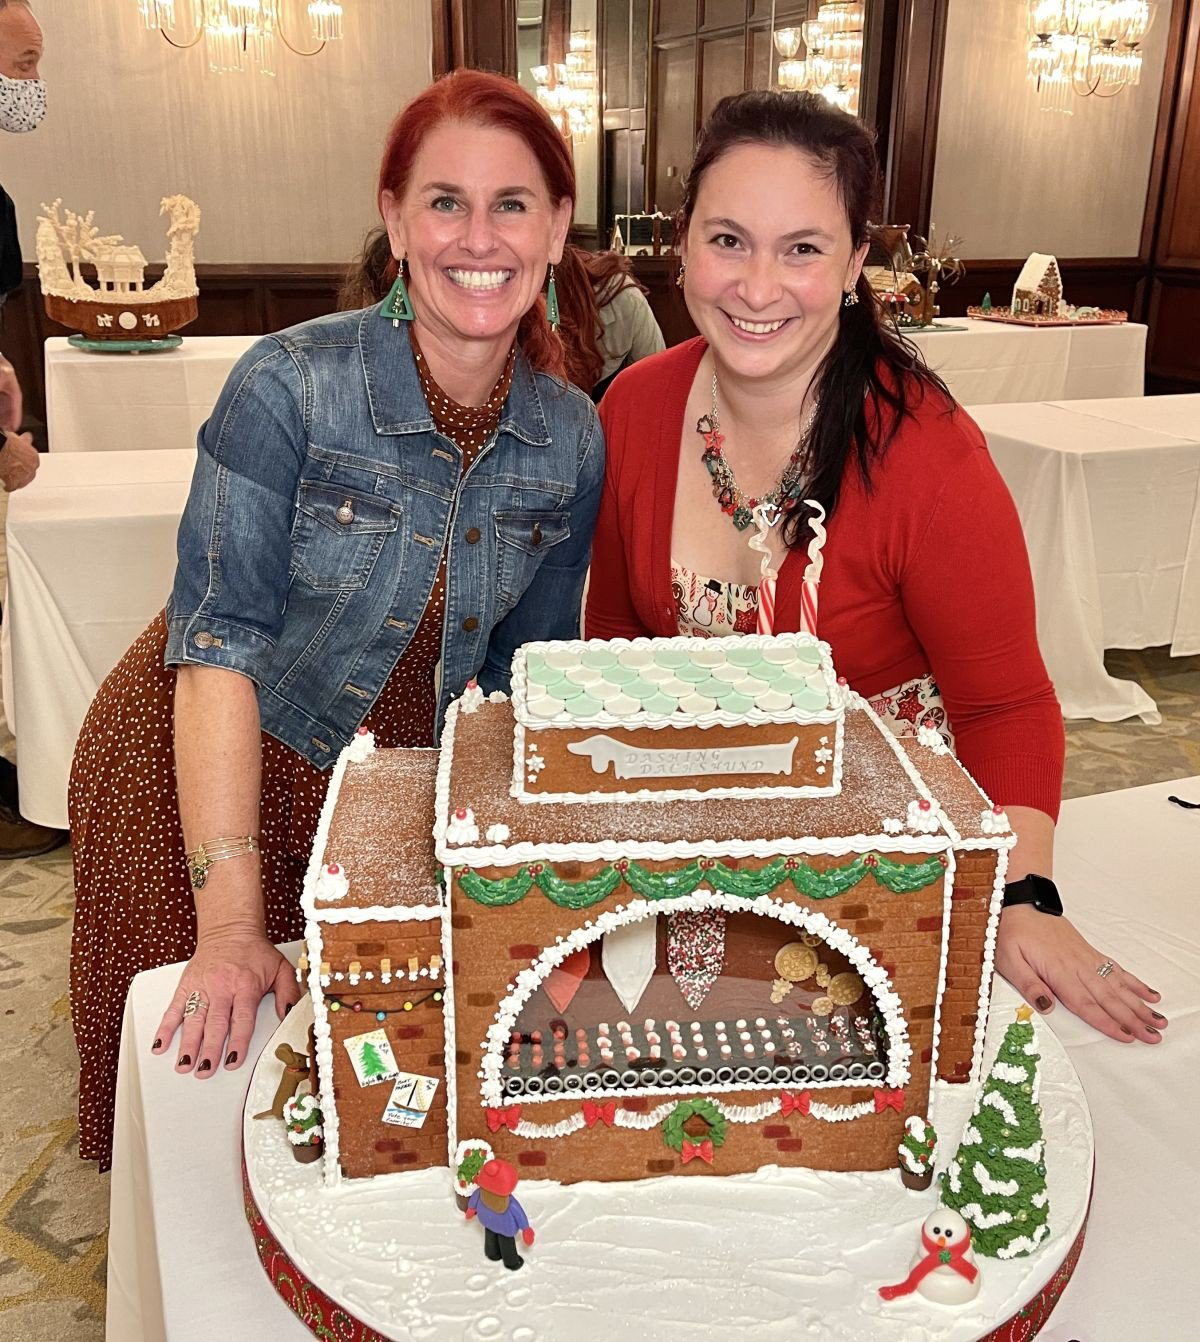 gingerbread_trail_11-21-2020_at_desoto_by_bunnyware-08-0a1be2e943066bd6.jpg